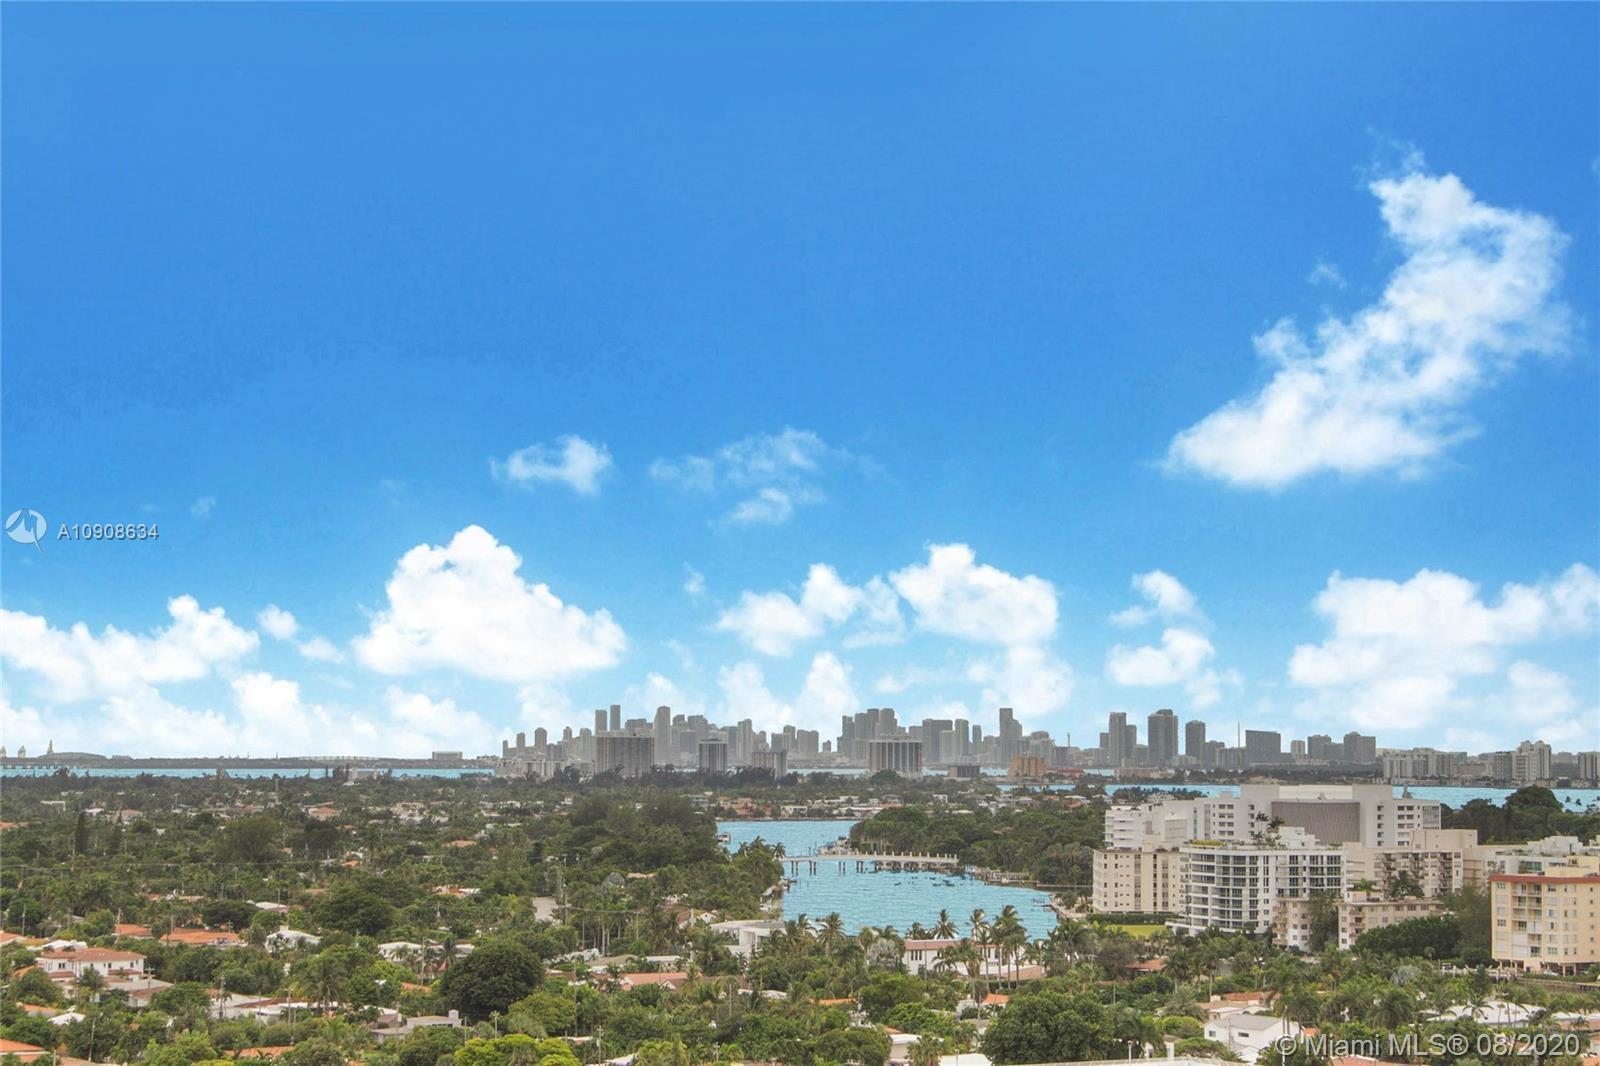 Balmoral Condominium at the prestigious Bal Harbour city in Florida. This unit located on the 20th f